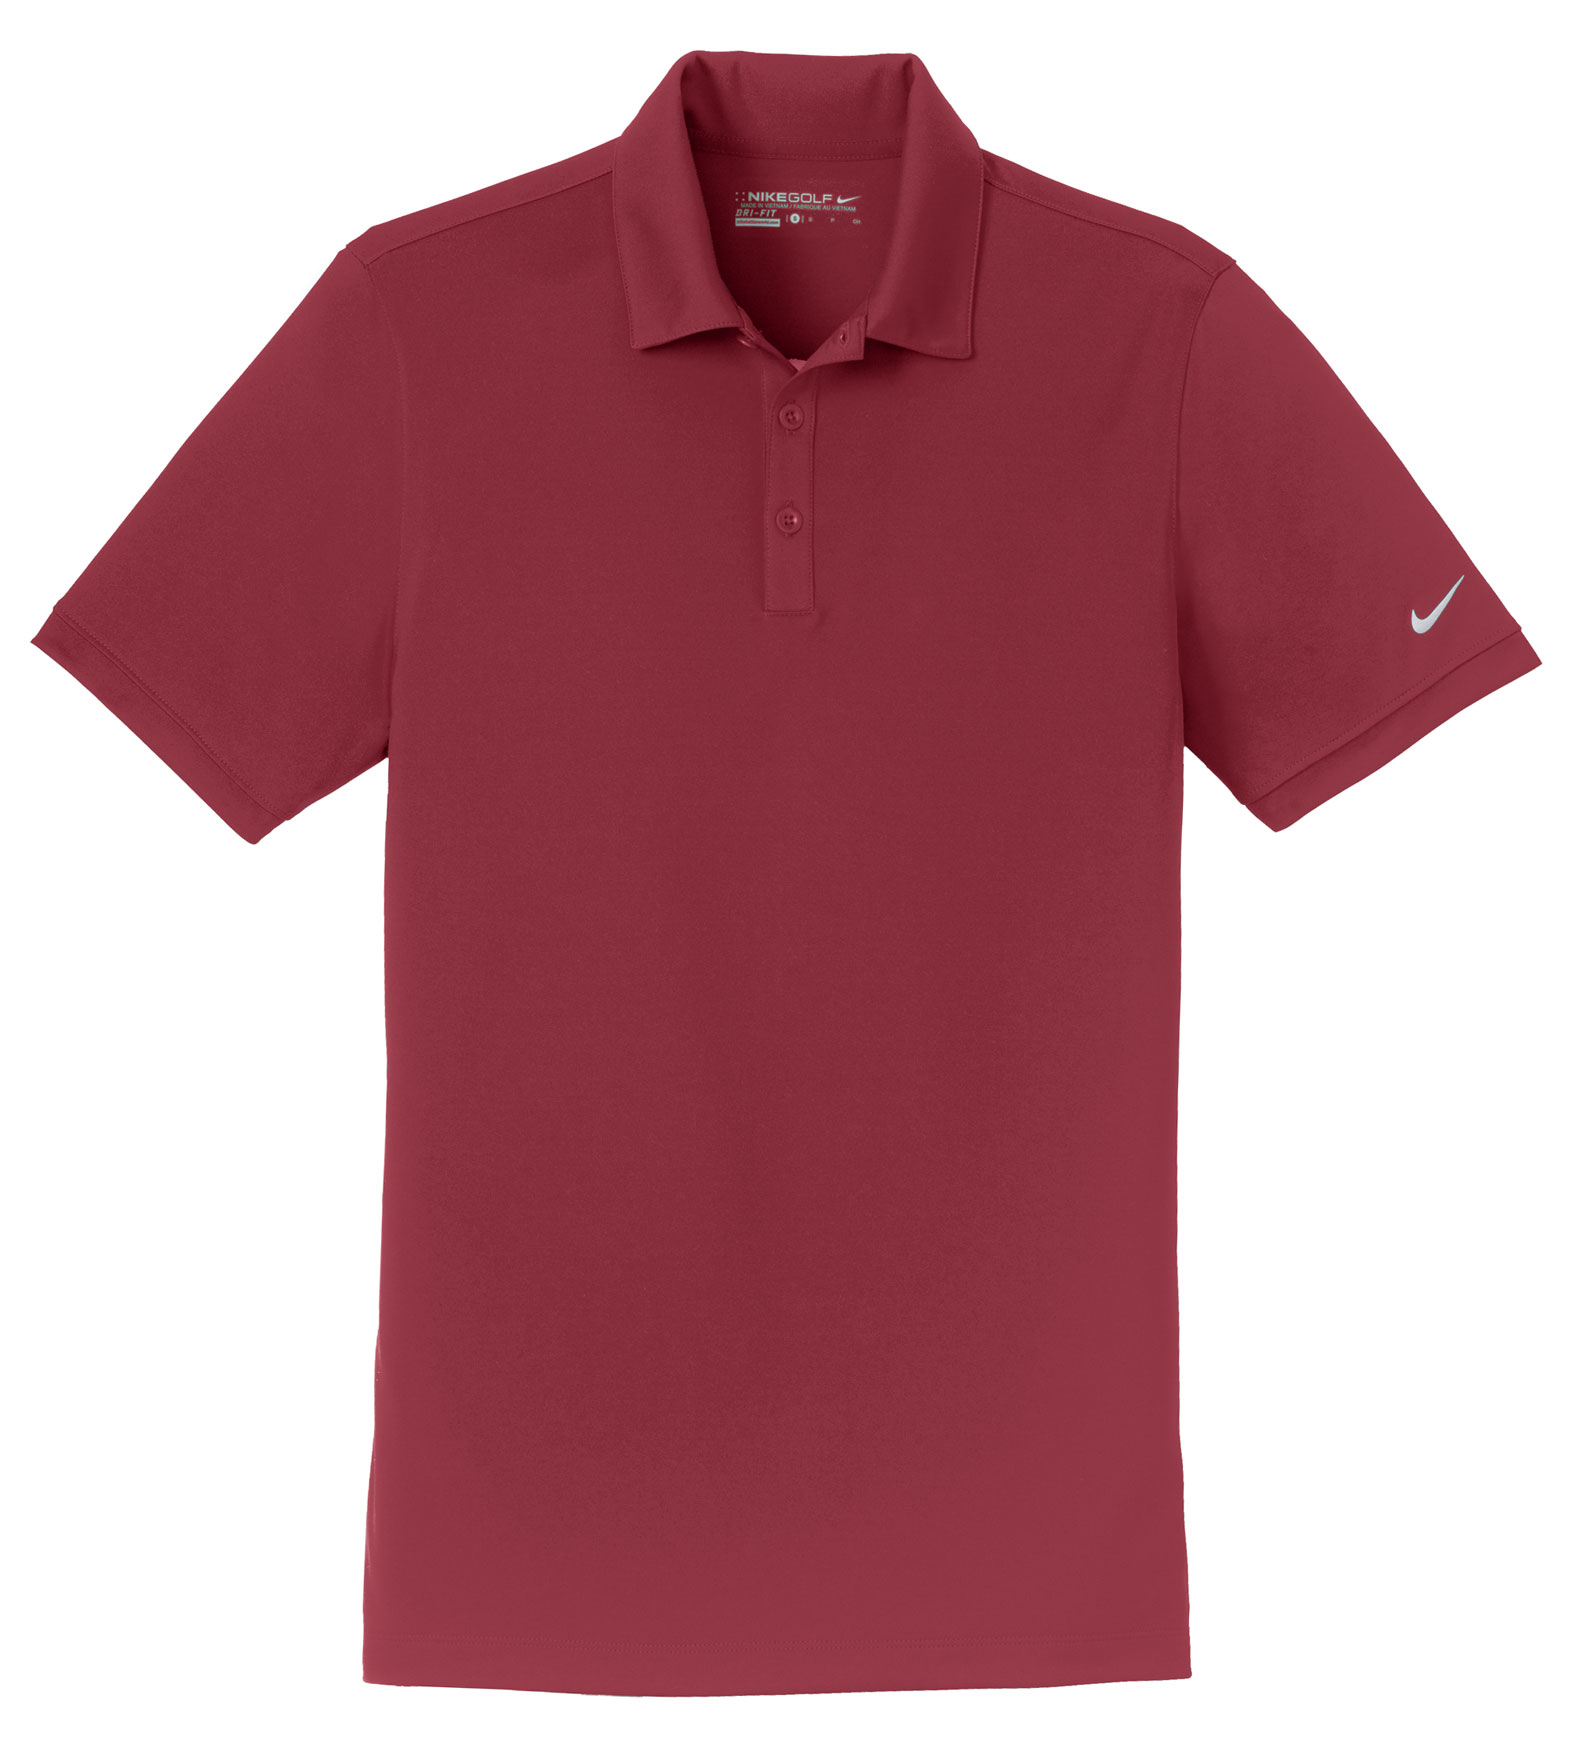 Nike Golf Mens Dri-FIT Smooth Performance Polo